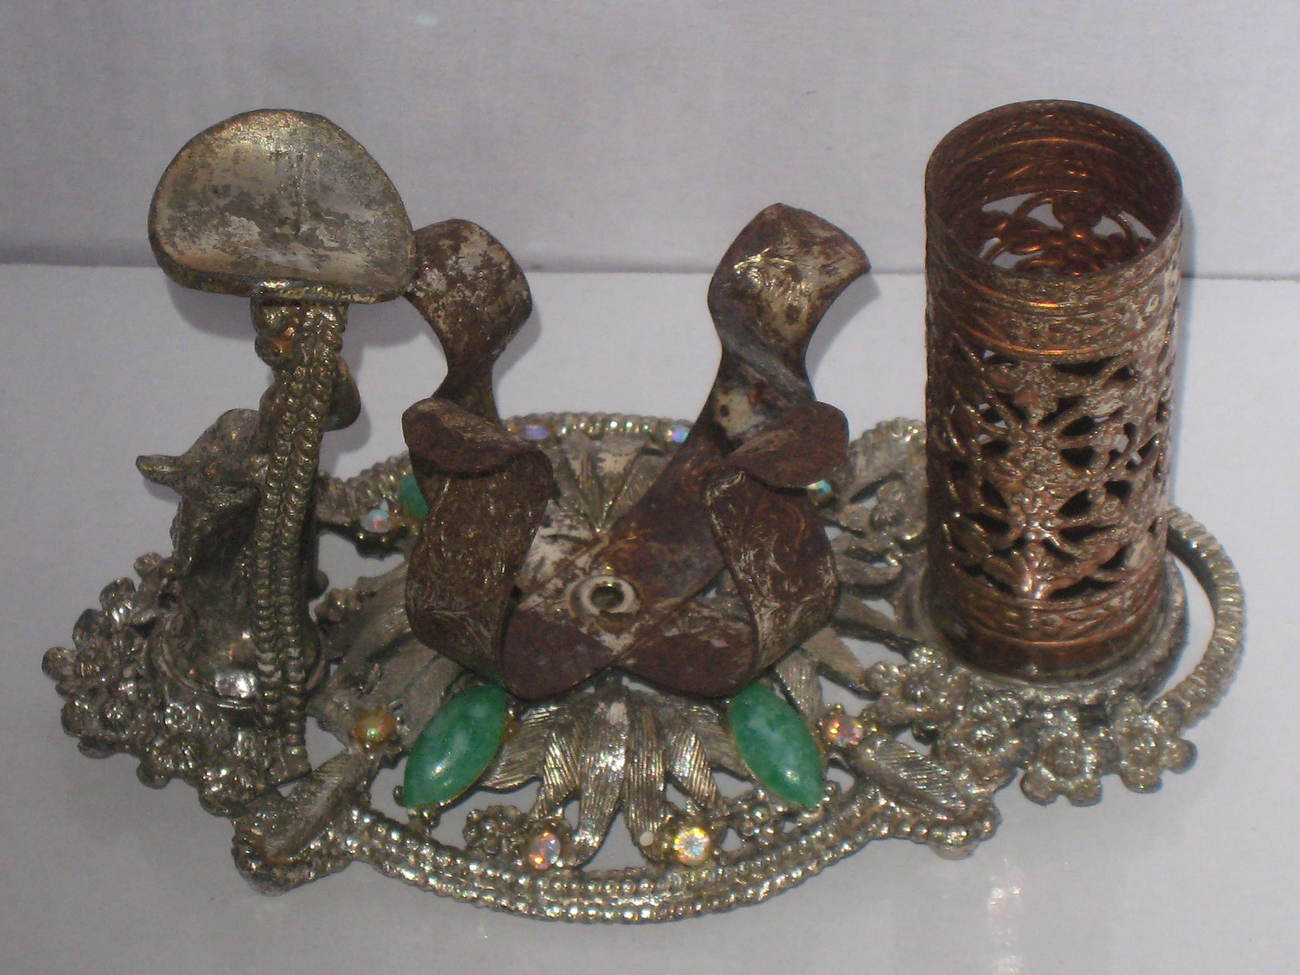 Antique silver, gold colored filigree lipstick, polish, & perfume bottle holder